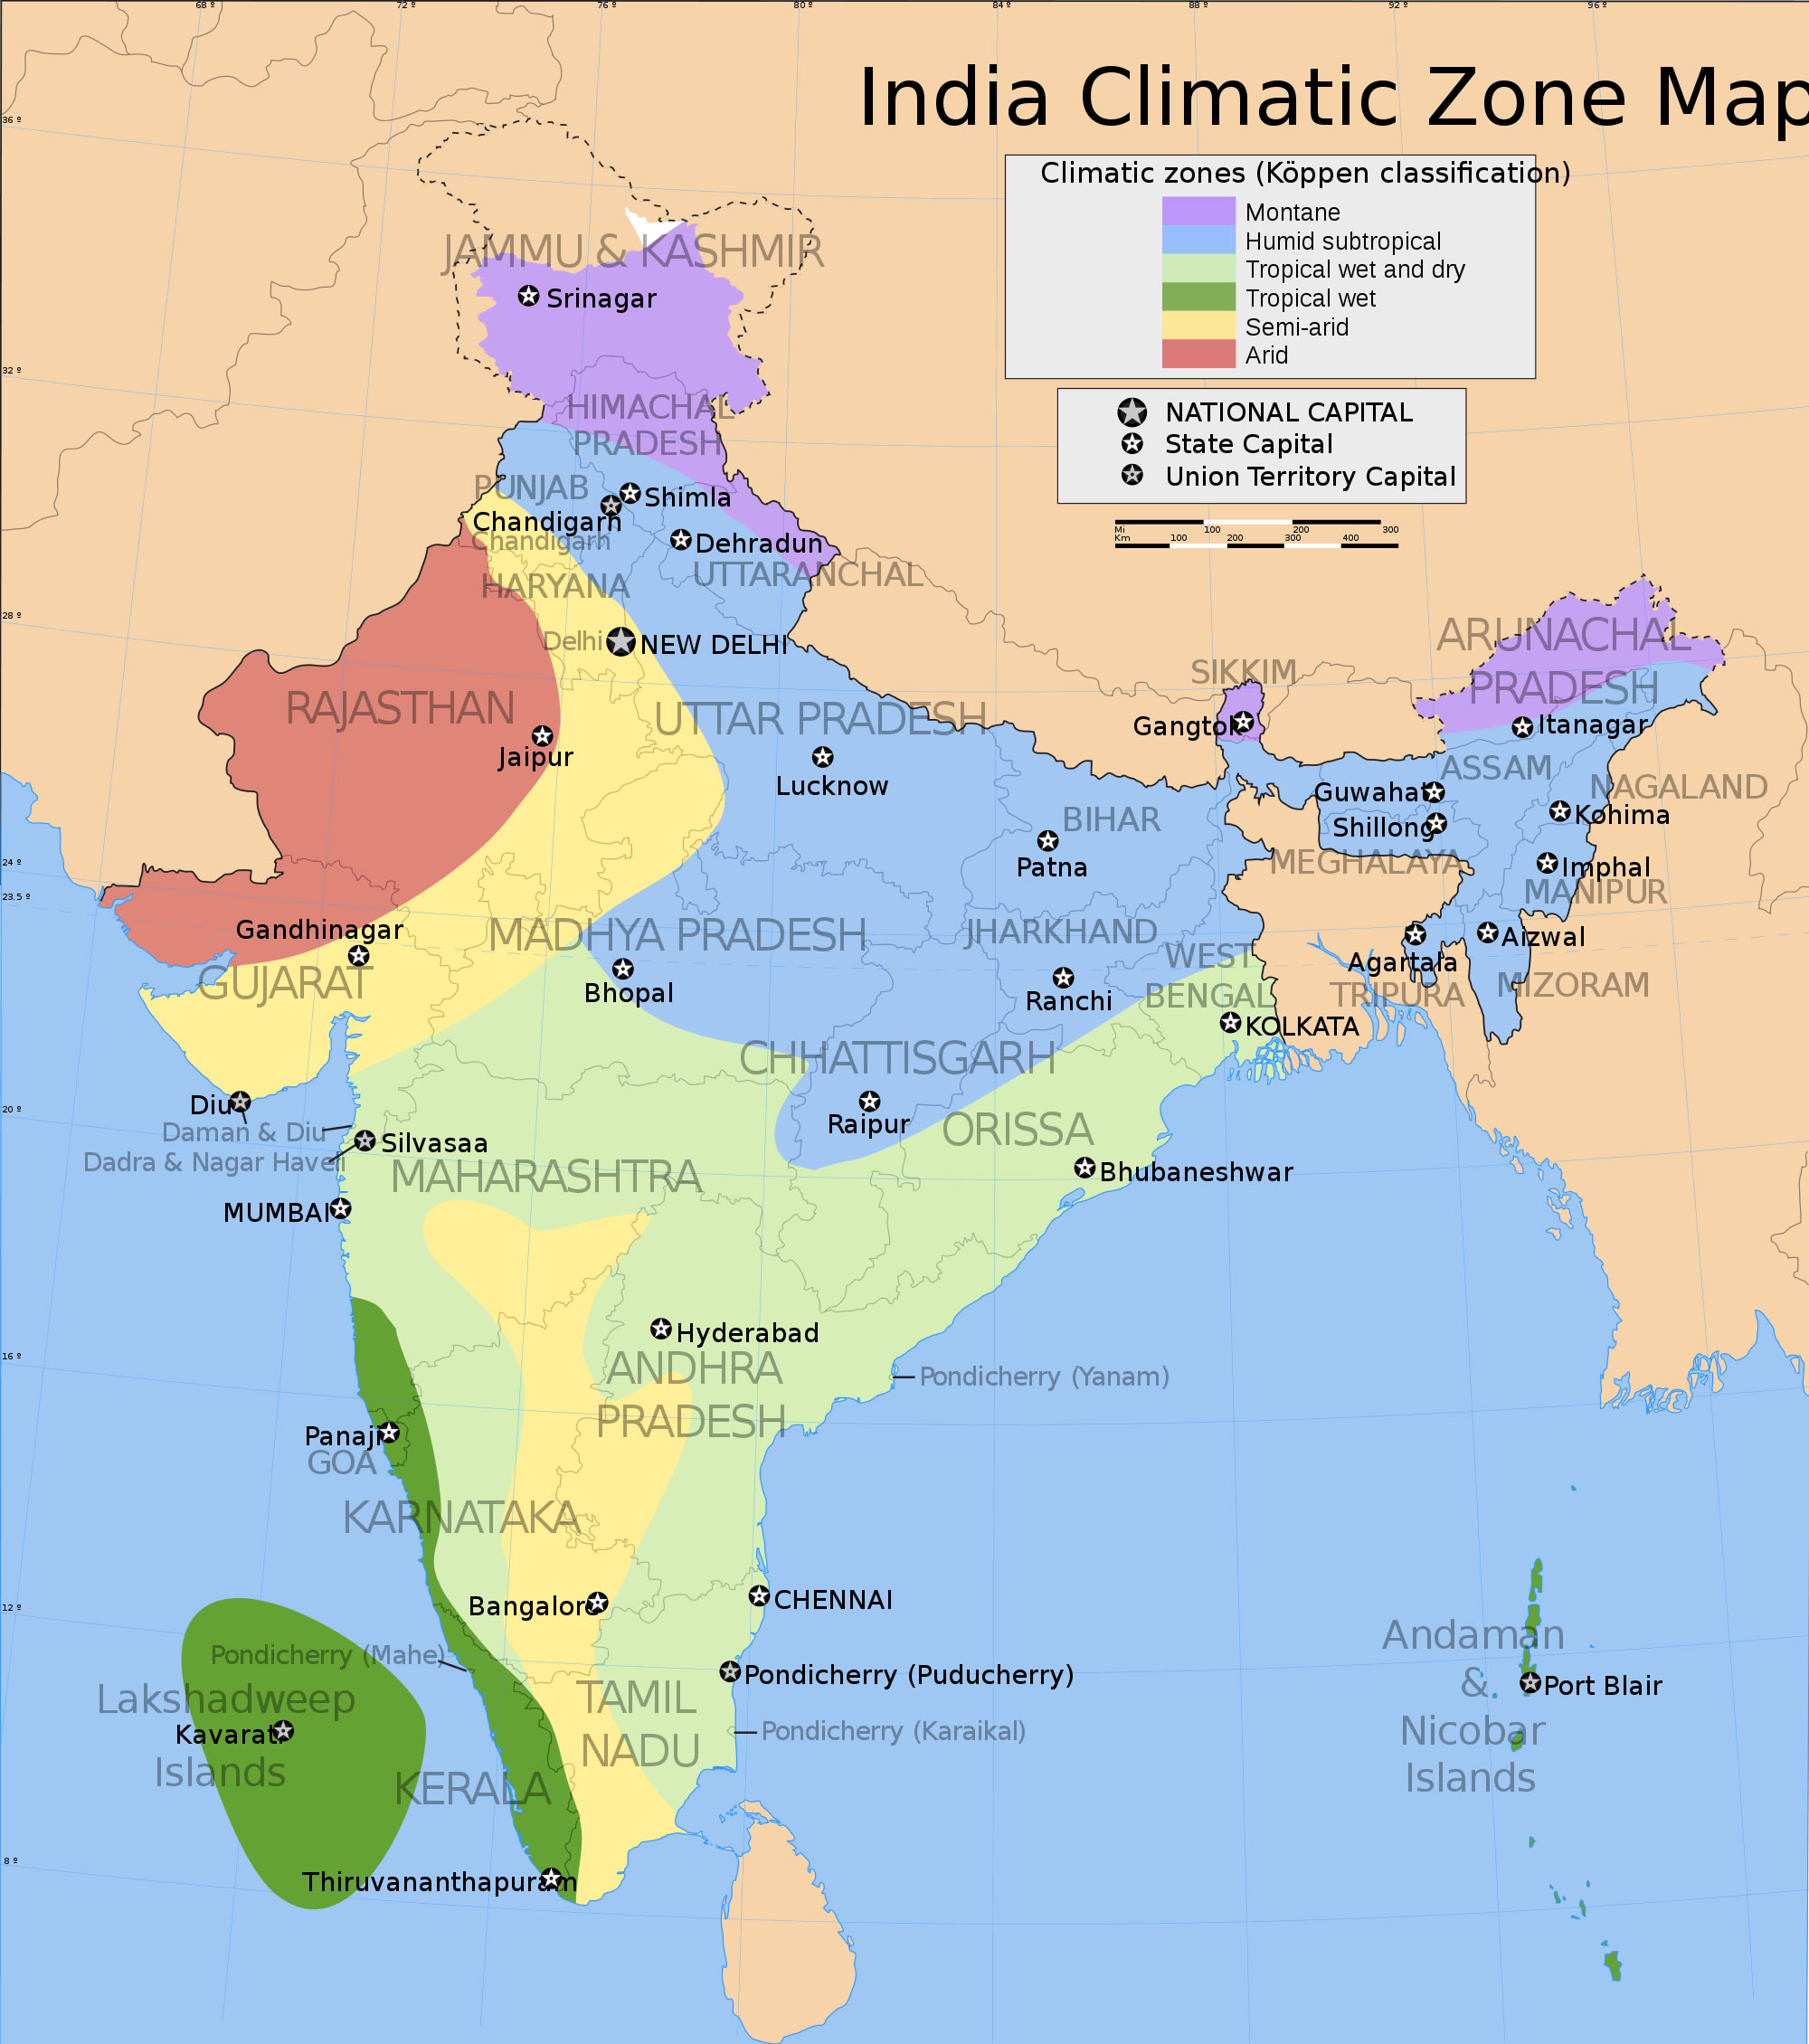 Rajasthan Carte Monde.India Climatic Zone Map Maps Of India